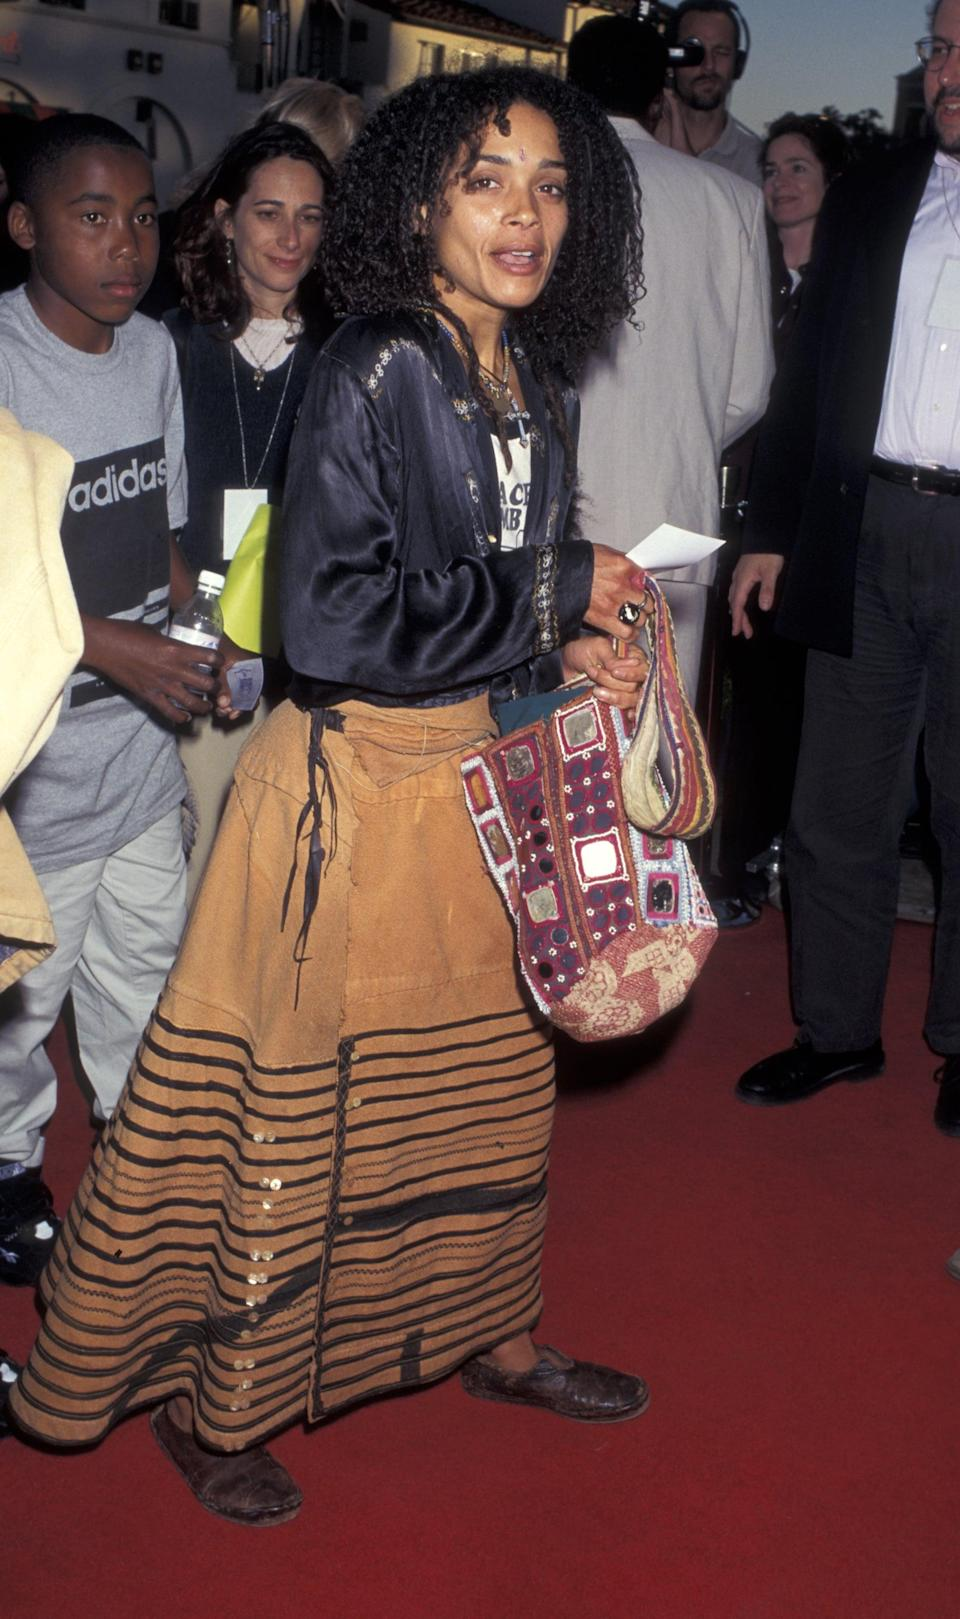 """<p>Lisa Bonet attended <strong>The Aristocats </strong>1996 video release premiere in both an edgy and laid-back look by pairing a brown maxi skirt with a silk onyx blouse. It's clear that <span class=""""title-text   """">Zoë</span> Kravitz gets some of her <a href=""""https://www.popsugar.com/fashion/zoe-kravitz-best-style-moments-47256637"""" class=""""link rapid-noclick-resp"""" rel=""""nofollow noopener"""" target=""""_blank"""" data-ylk=""""slk:stylish sensibilities"""">stylish sensibilities</a> from her mom!</p>"""